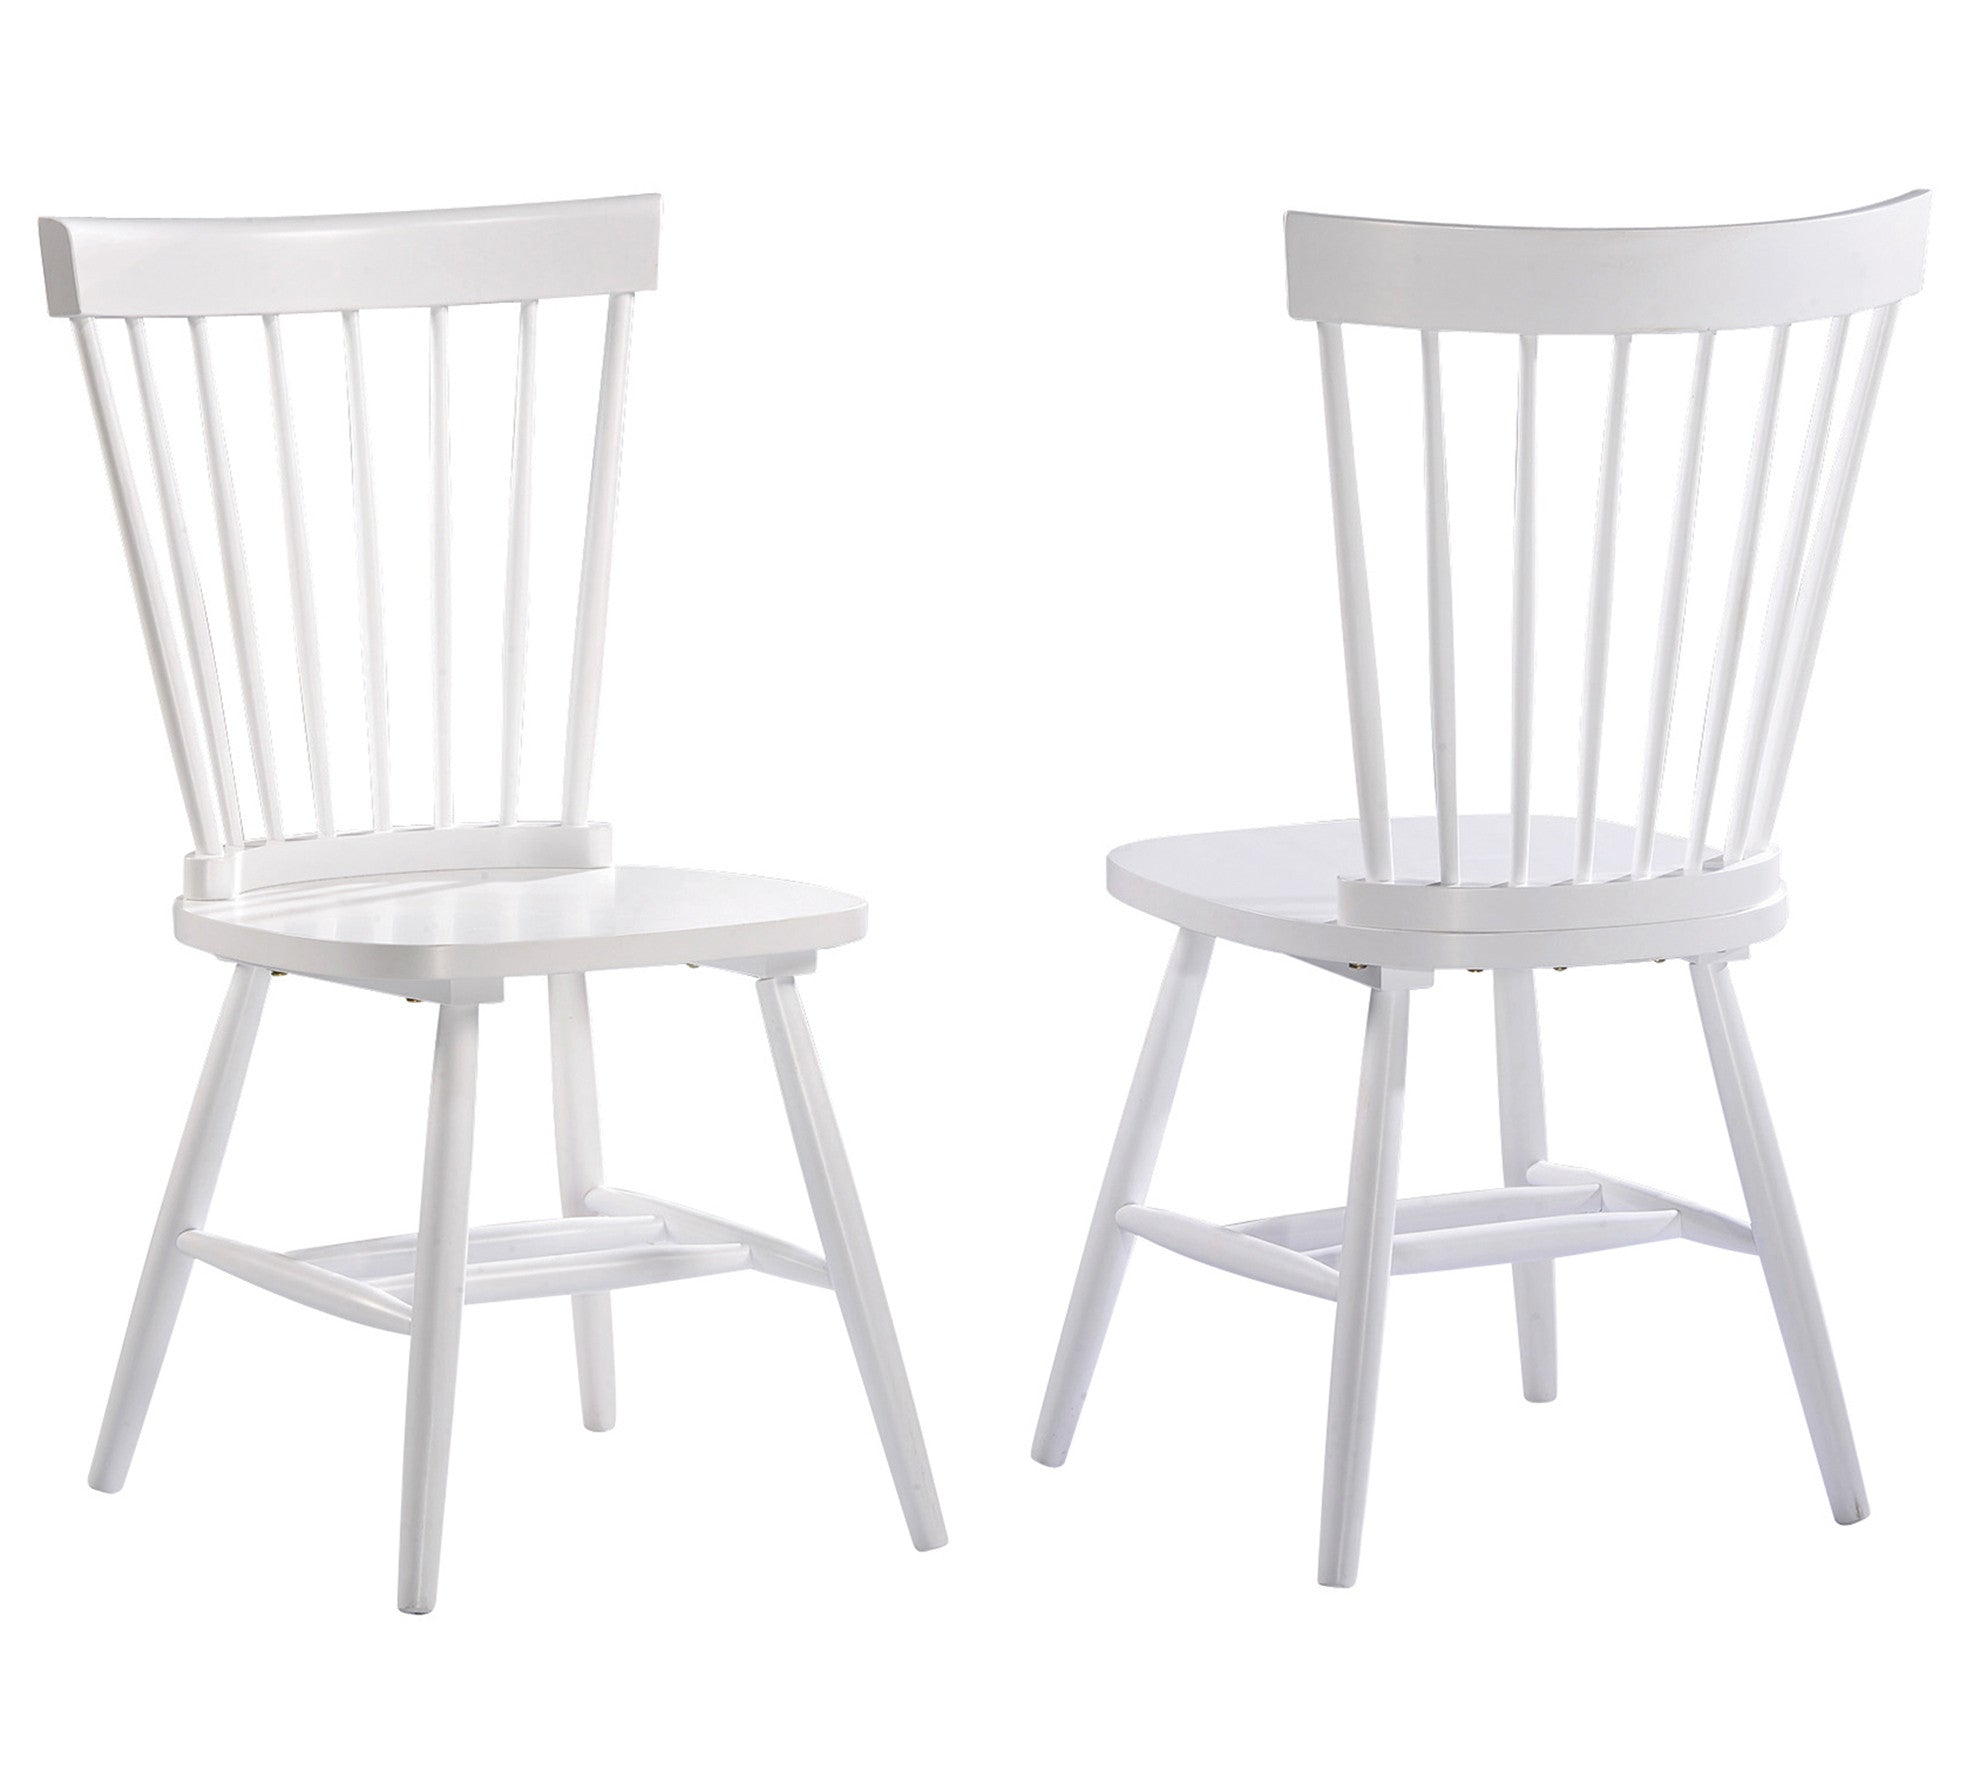 Chicago chair 2 pkg - price is for two chairs